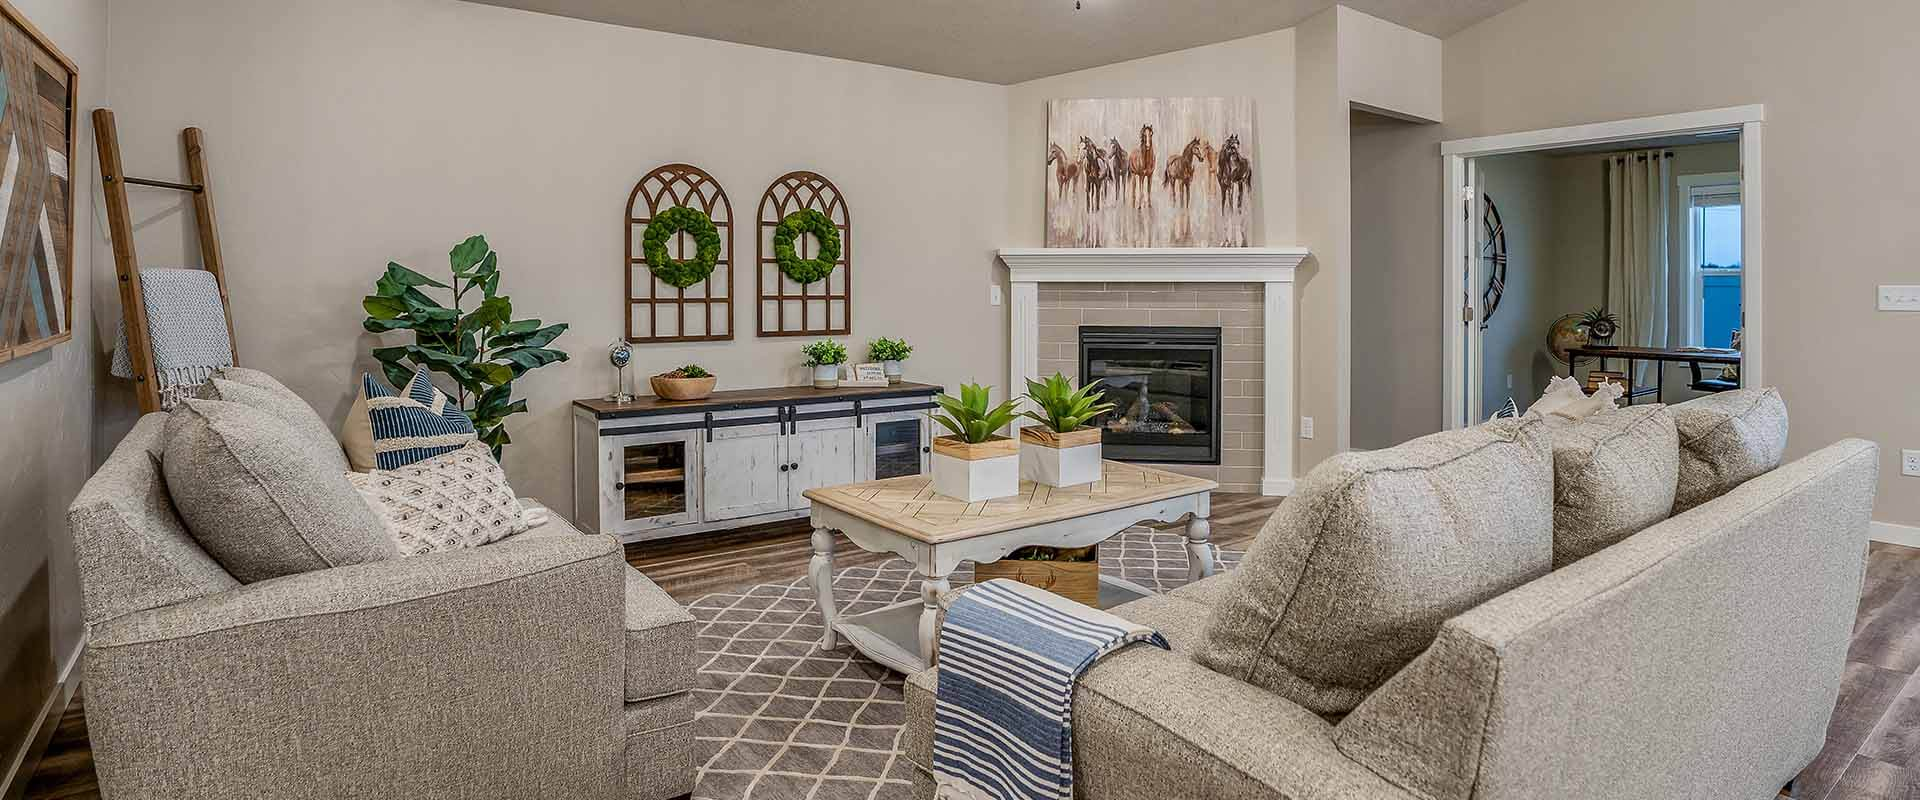 Crestwood_Hubble_Homes_New_Homes_Boise_Great Room.jpg